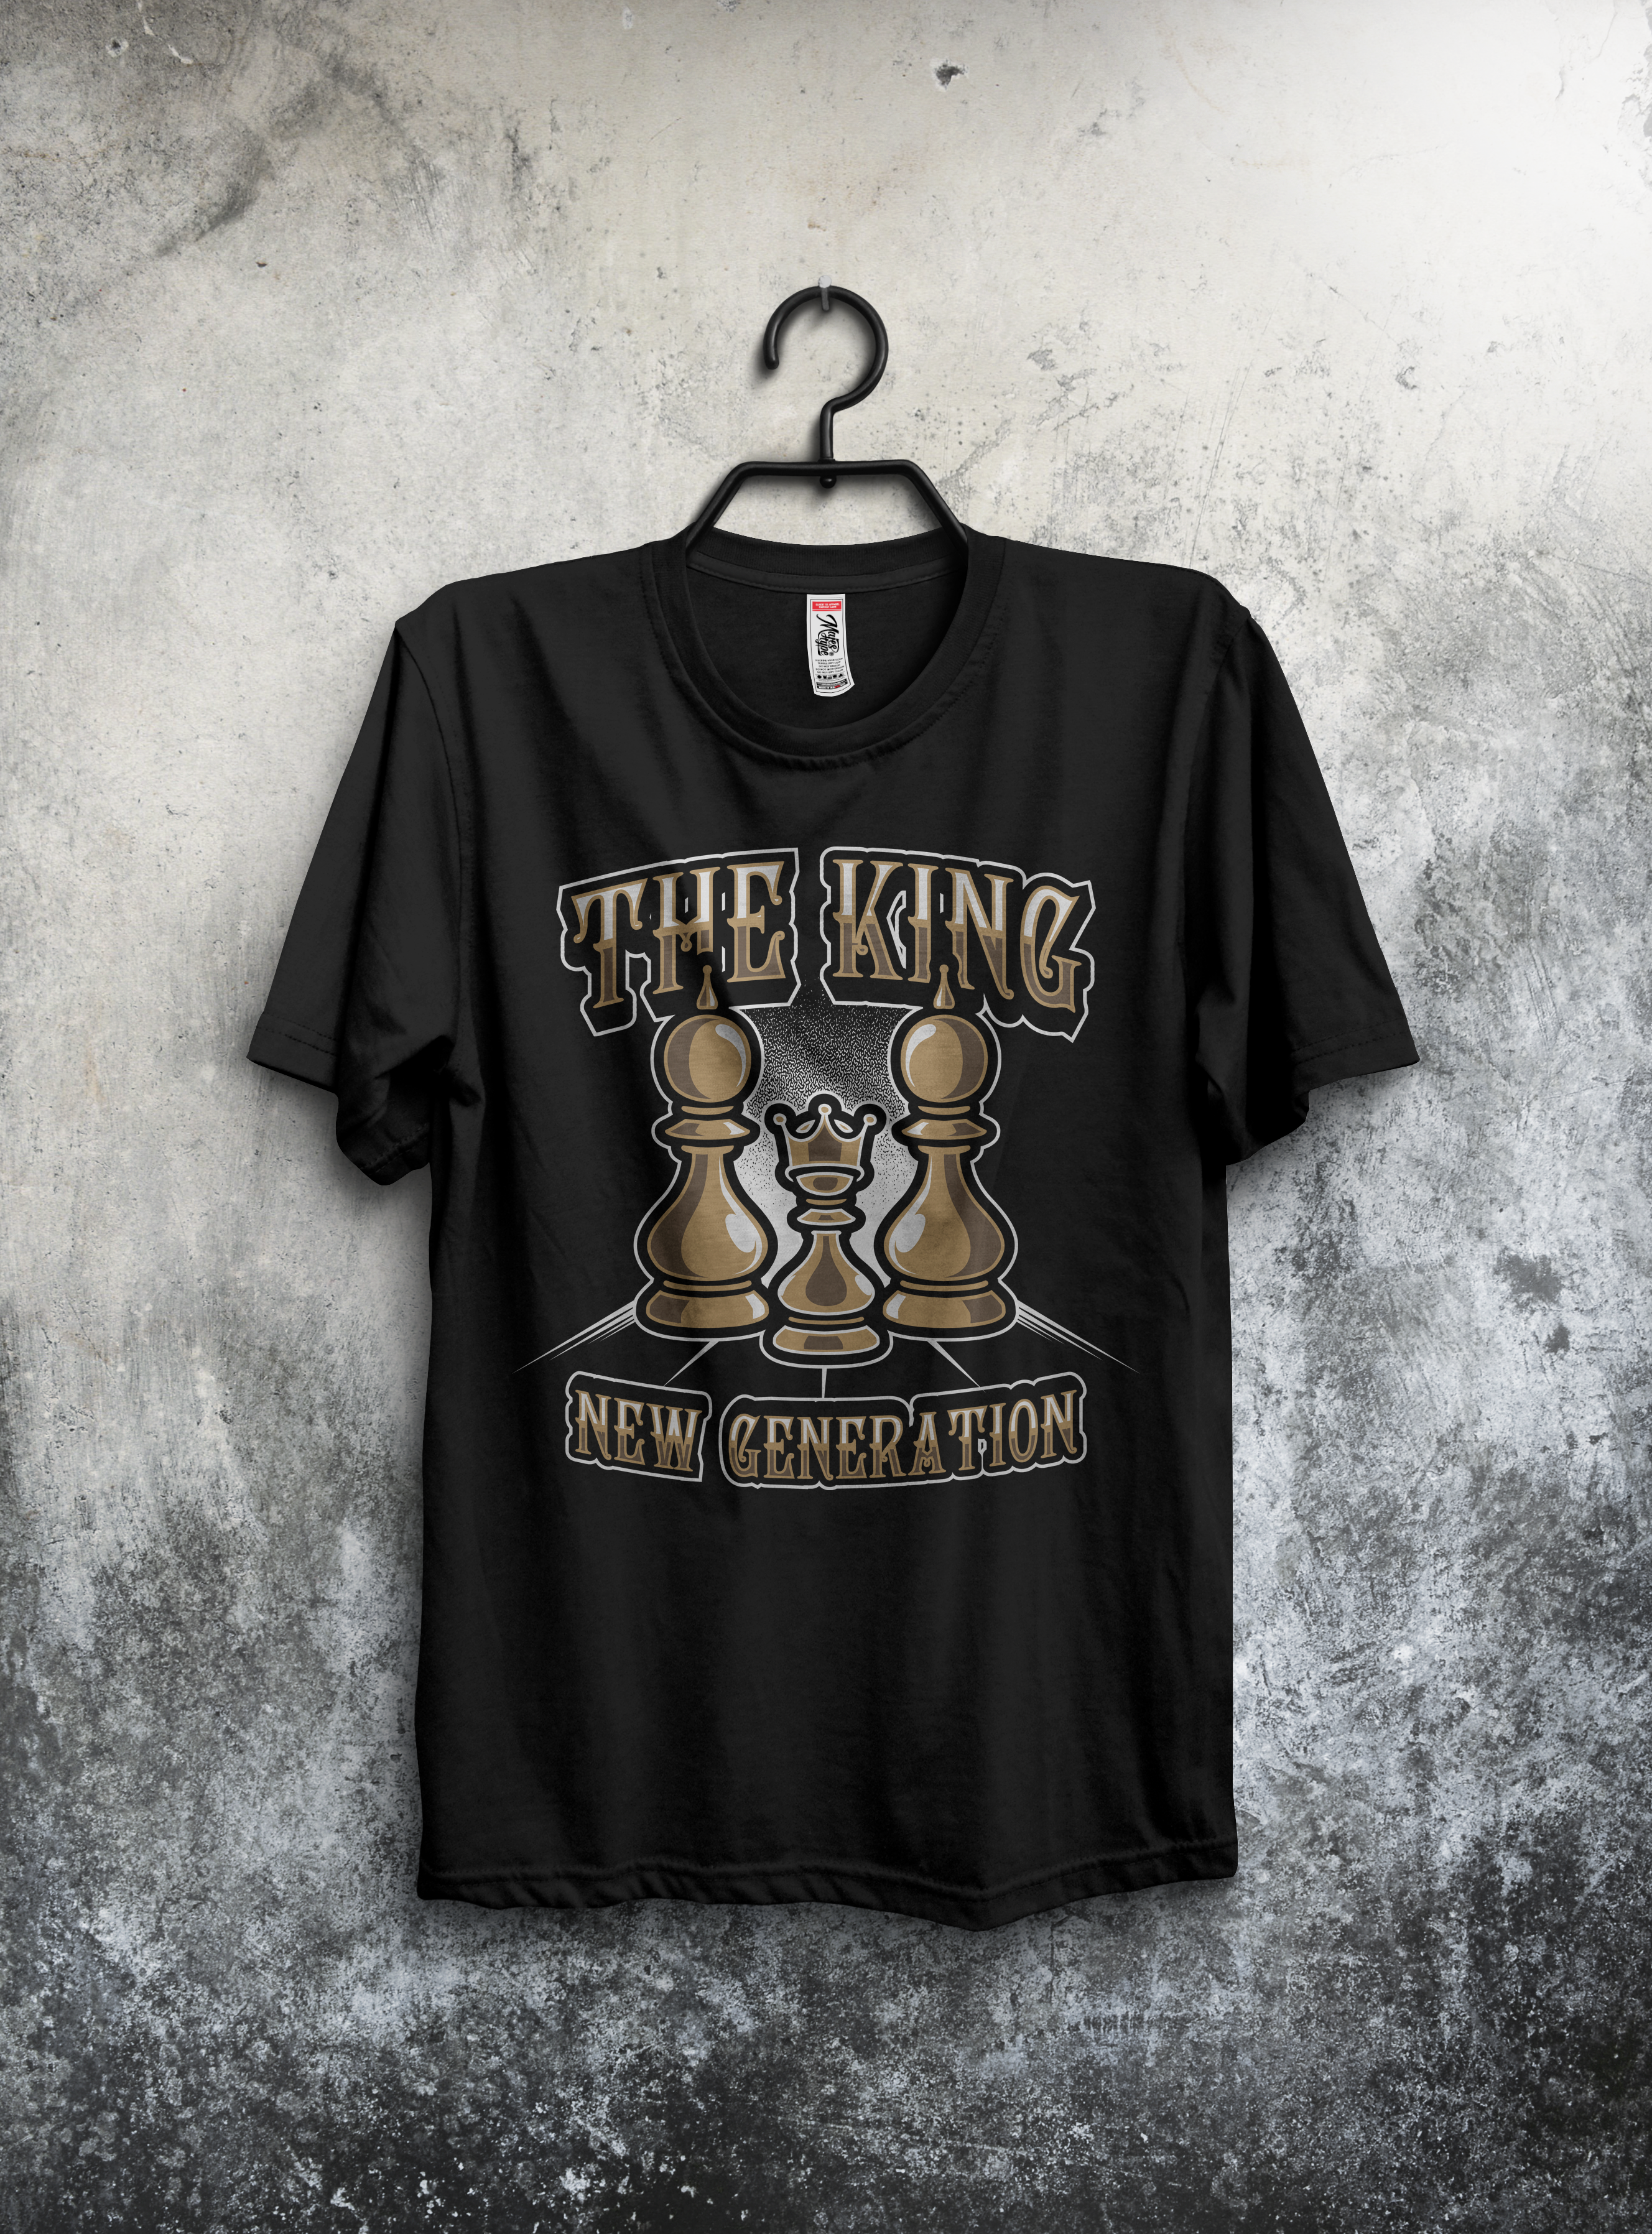 Parthomazi2 I Will Create Beautiful T Shirt Design With Mockup For 5 On Fiverr Com In 2020 Tshirt Designs Shirt Designs T Shirt Costumes